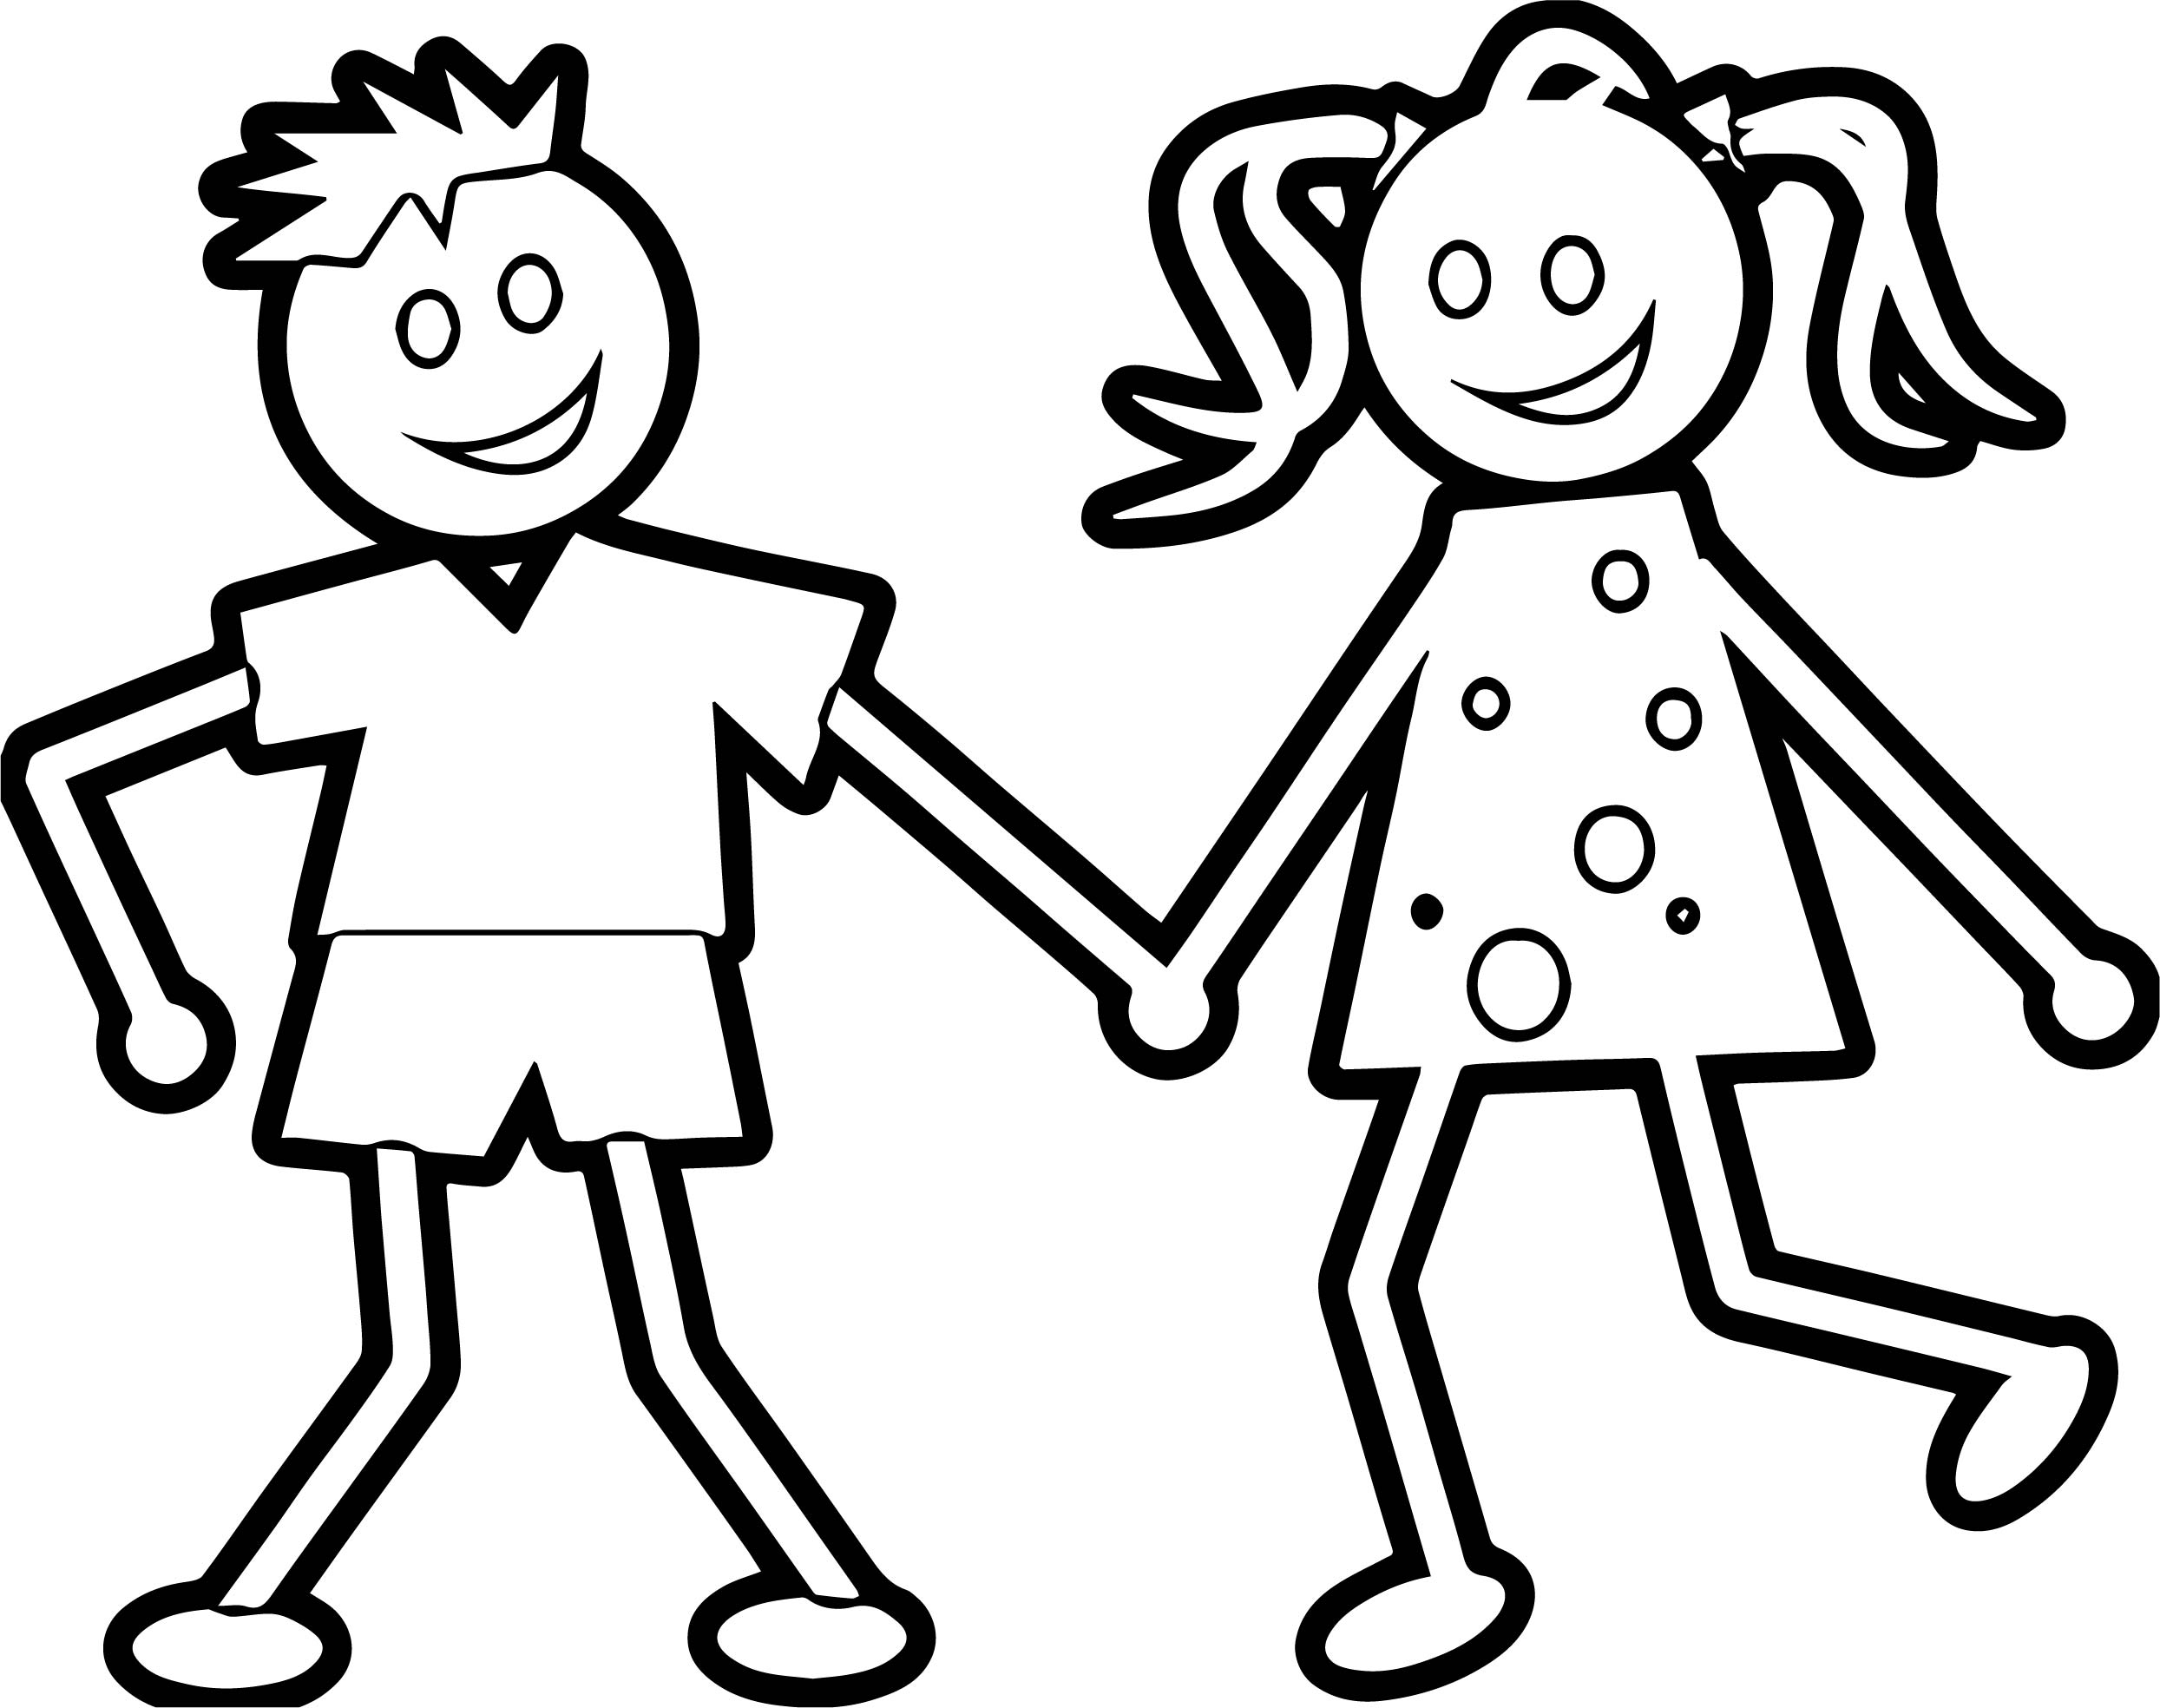 boy and girl coloring sheet get this precious moments boy and girl coloring pages 7sg12 sheet boy girl coloring and